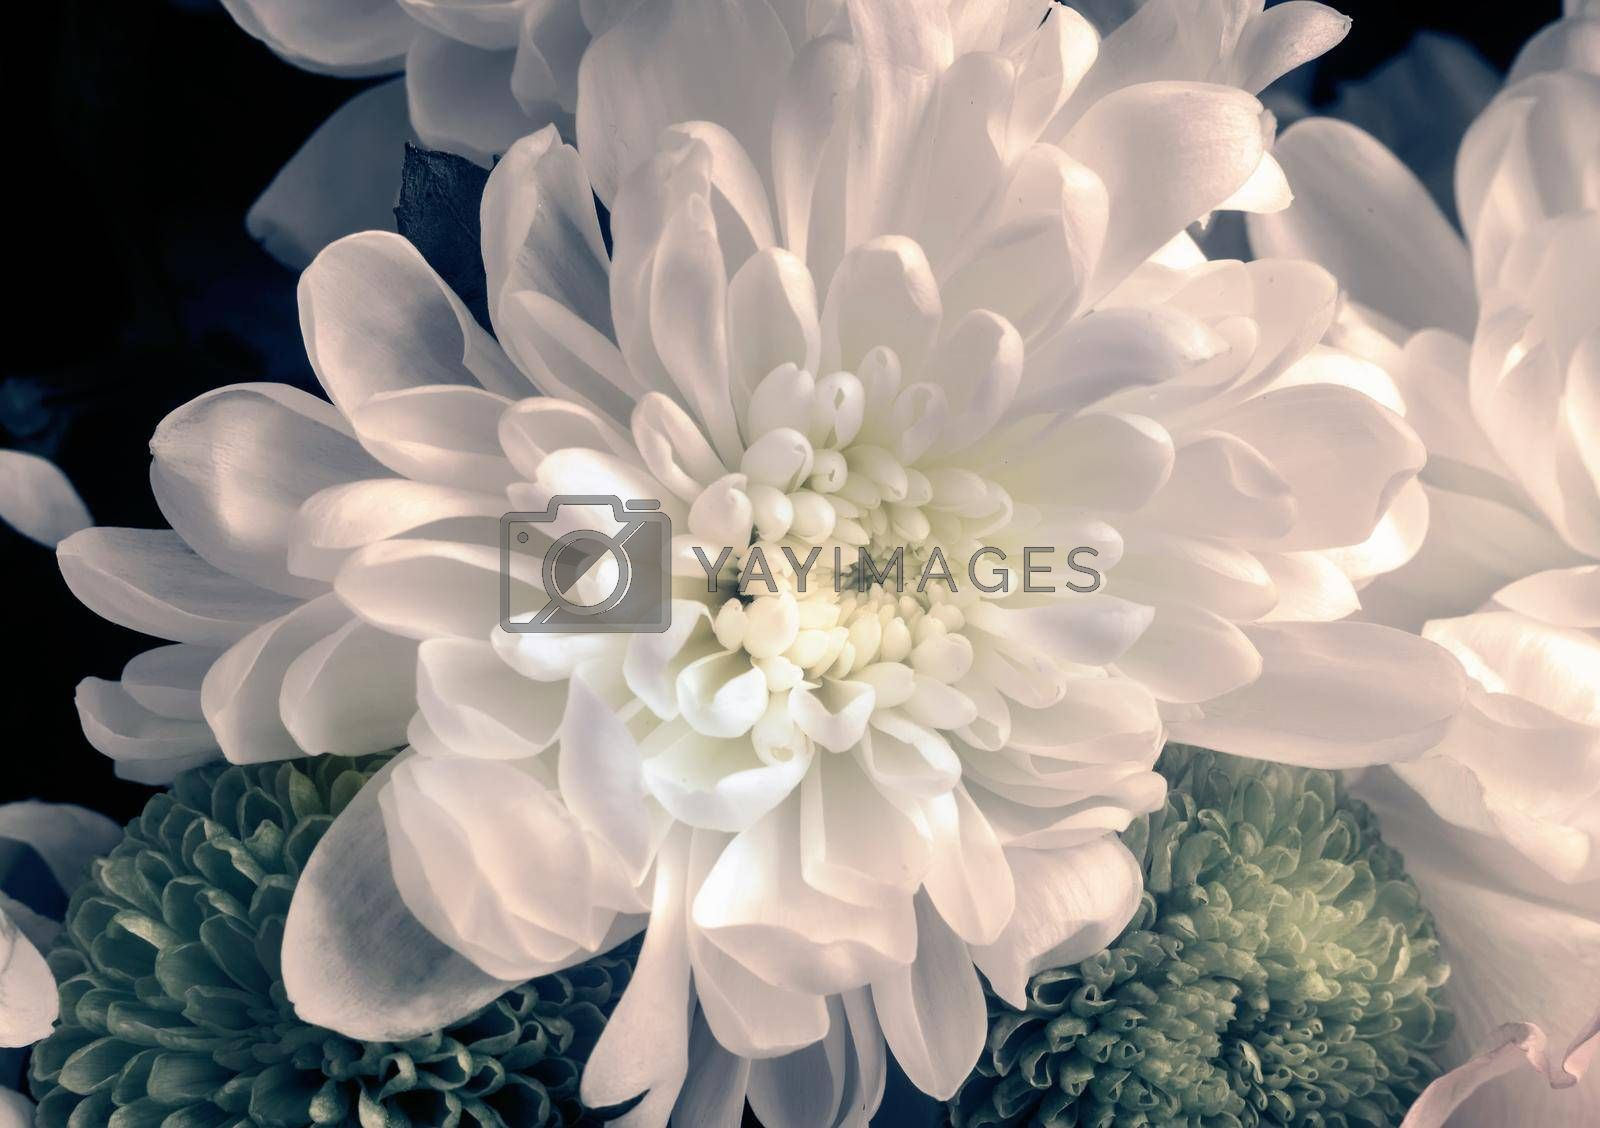 Beautiful white chrysanthemum in a bouquet among other flowers. Presented close-up.